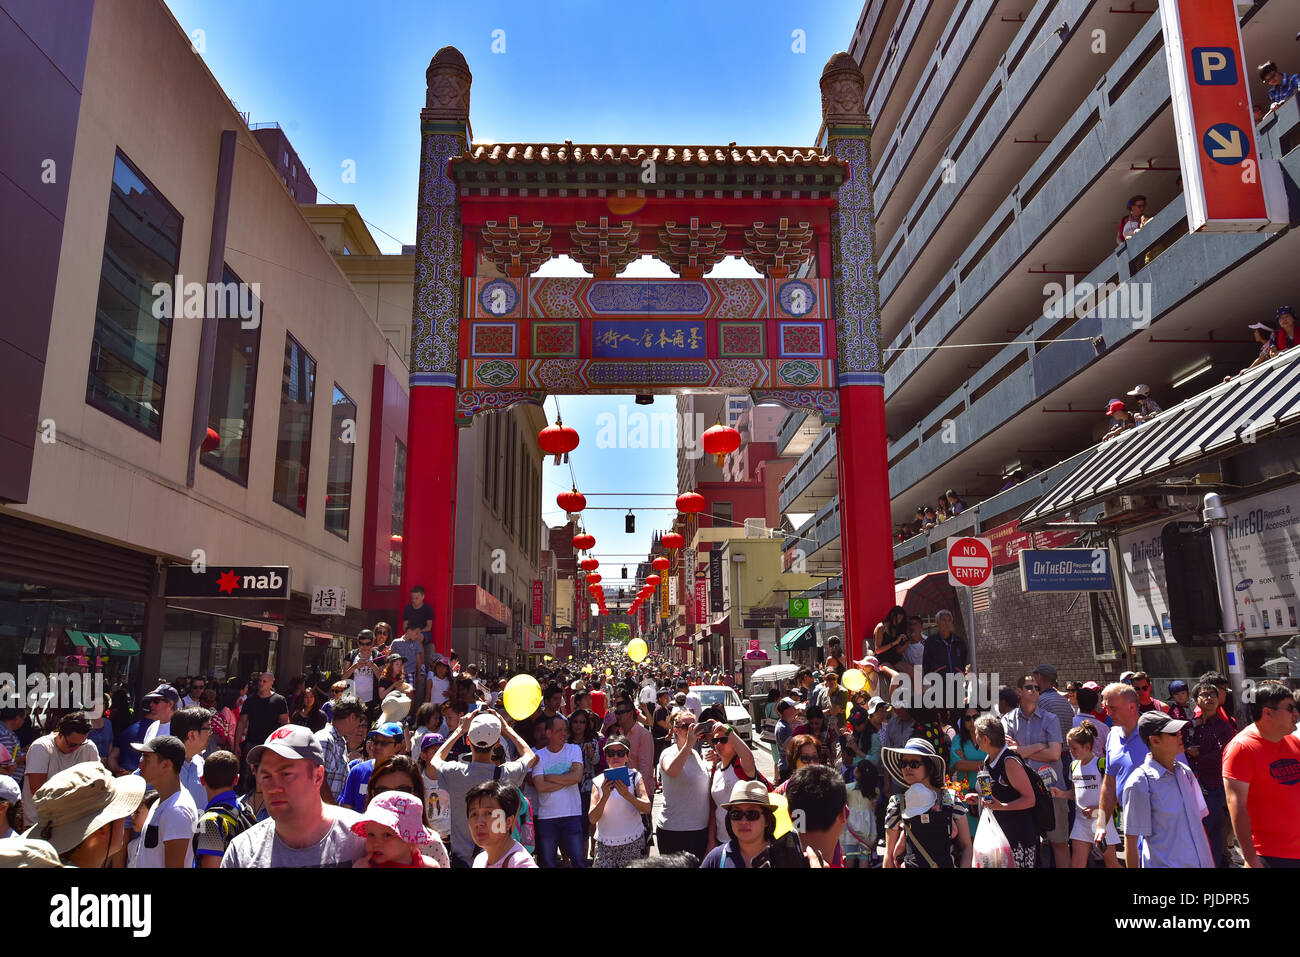 People celebrating Chinese New Year at Chinatown in